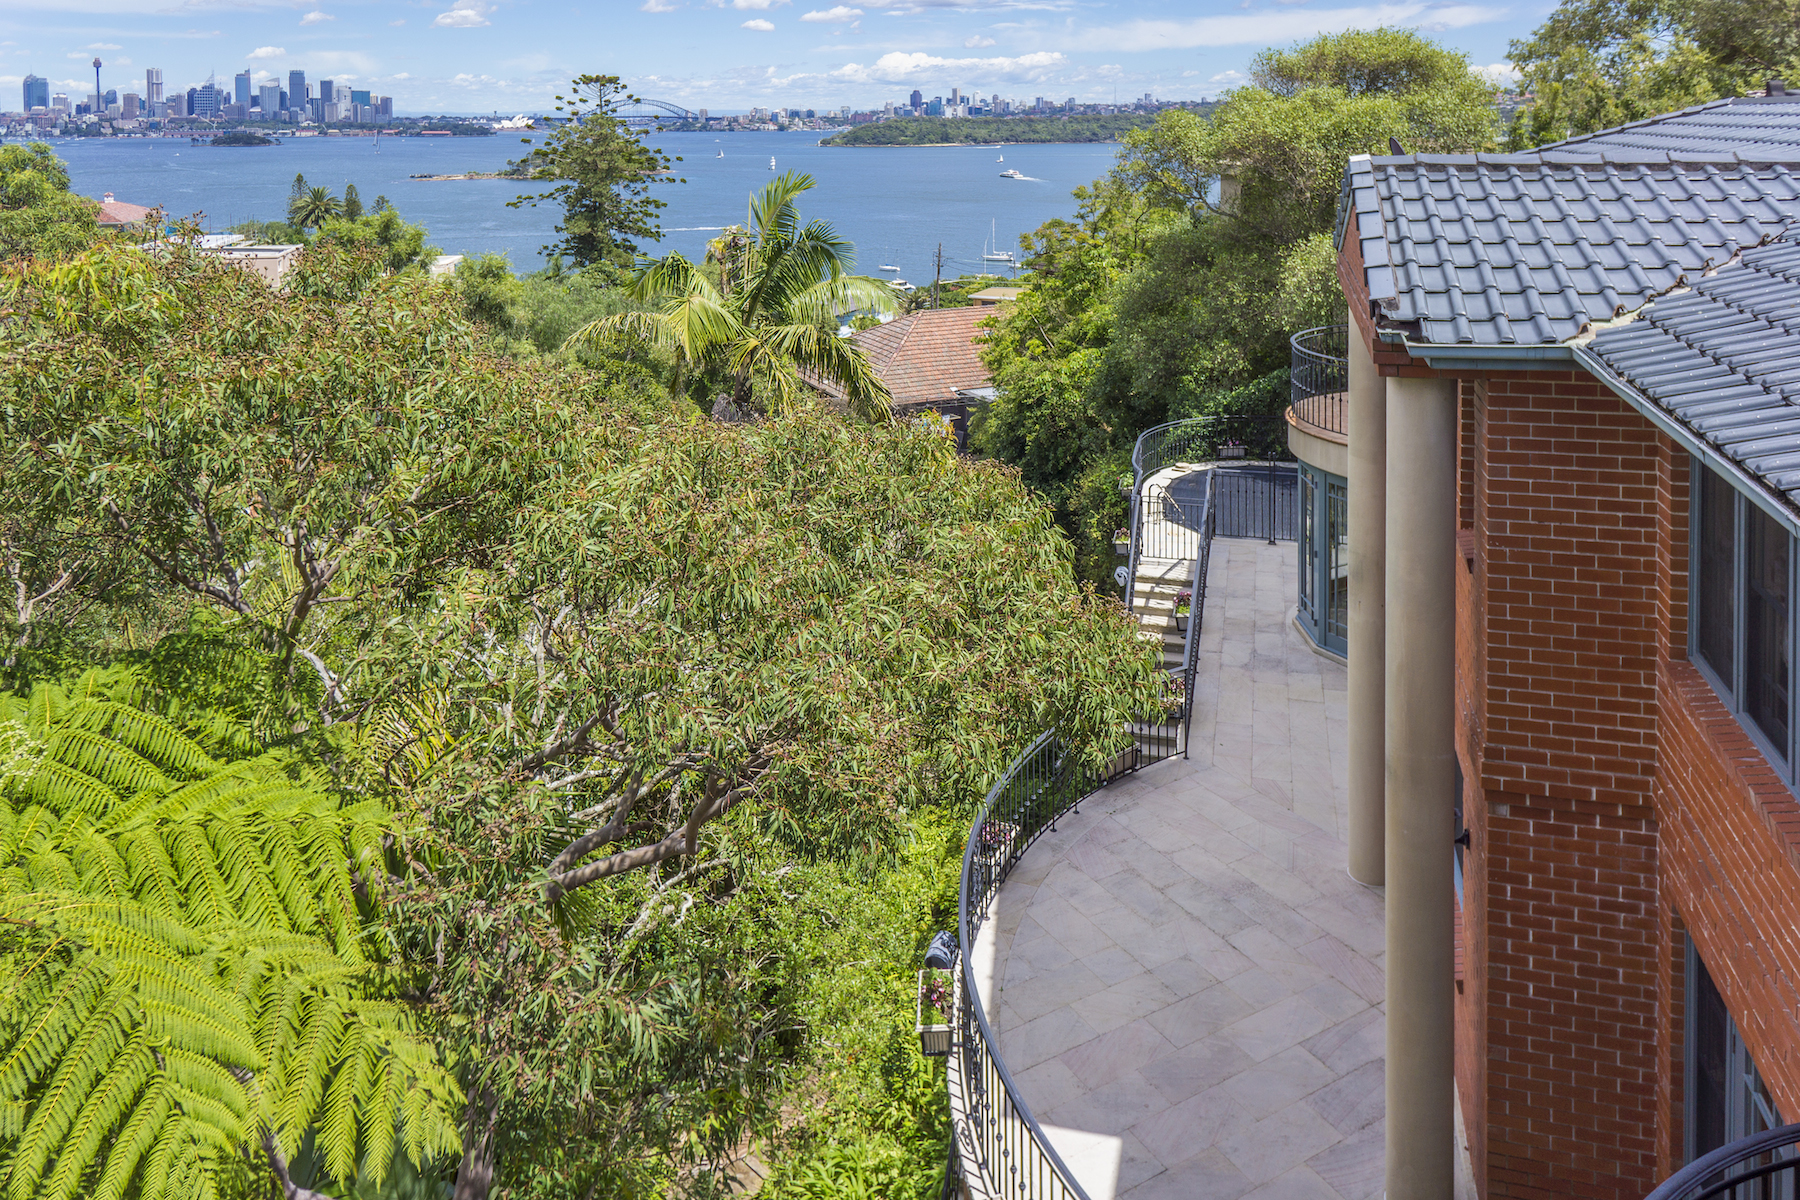 Other Residential for Sale at 18 Fisher Avenue, Vaucluse Sydney, New South Wales, 2030 Australia